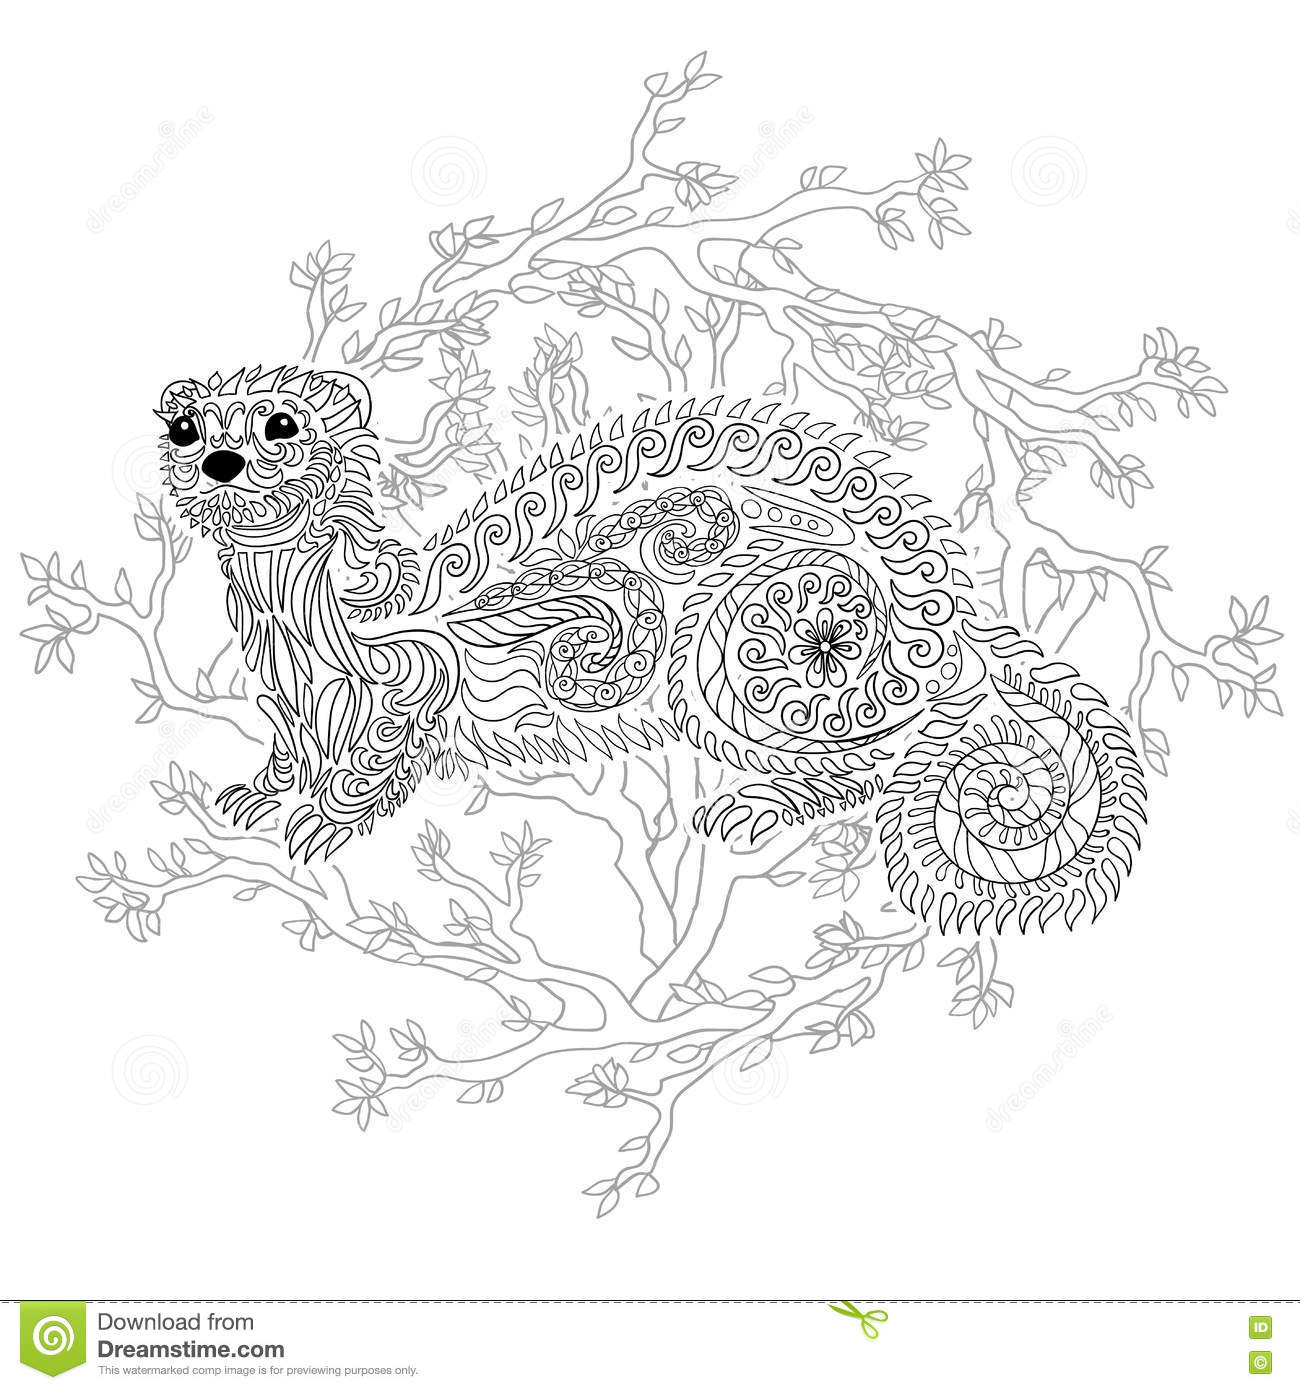 Hand Drawn Ferret With High Details Vector Illustration